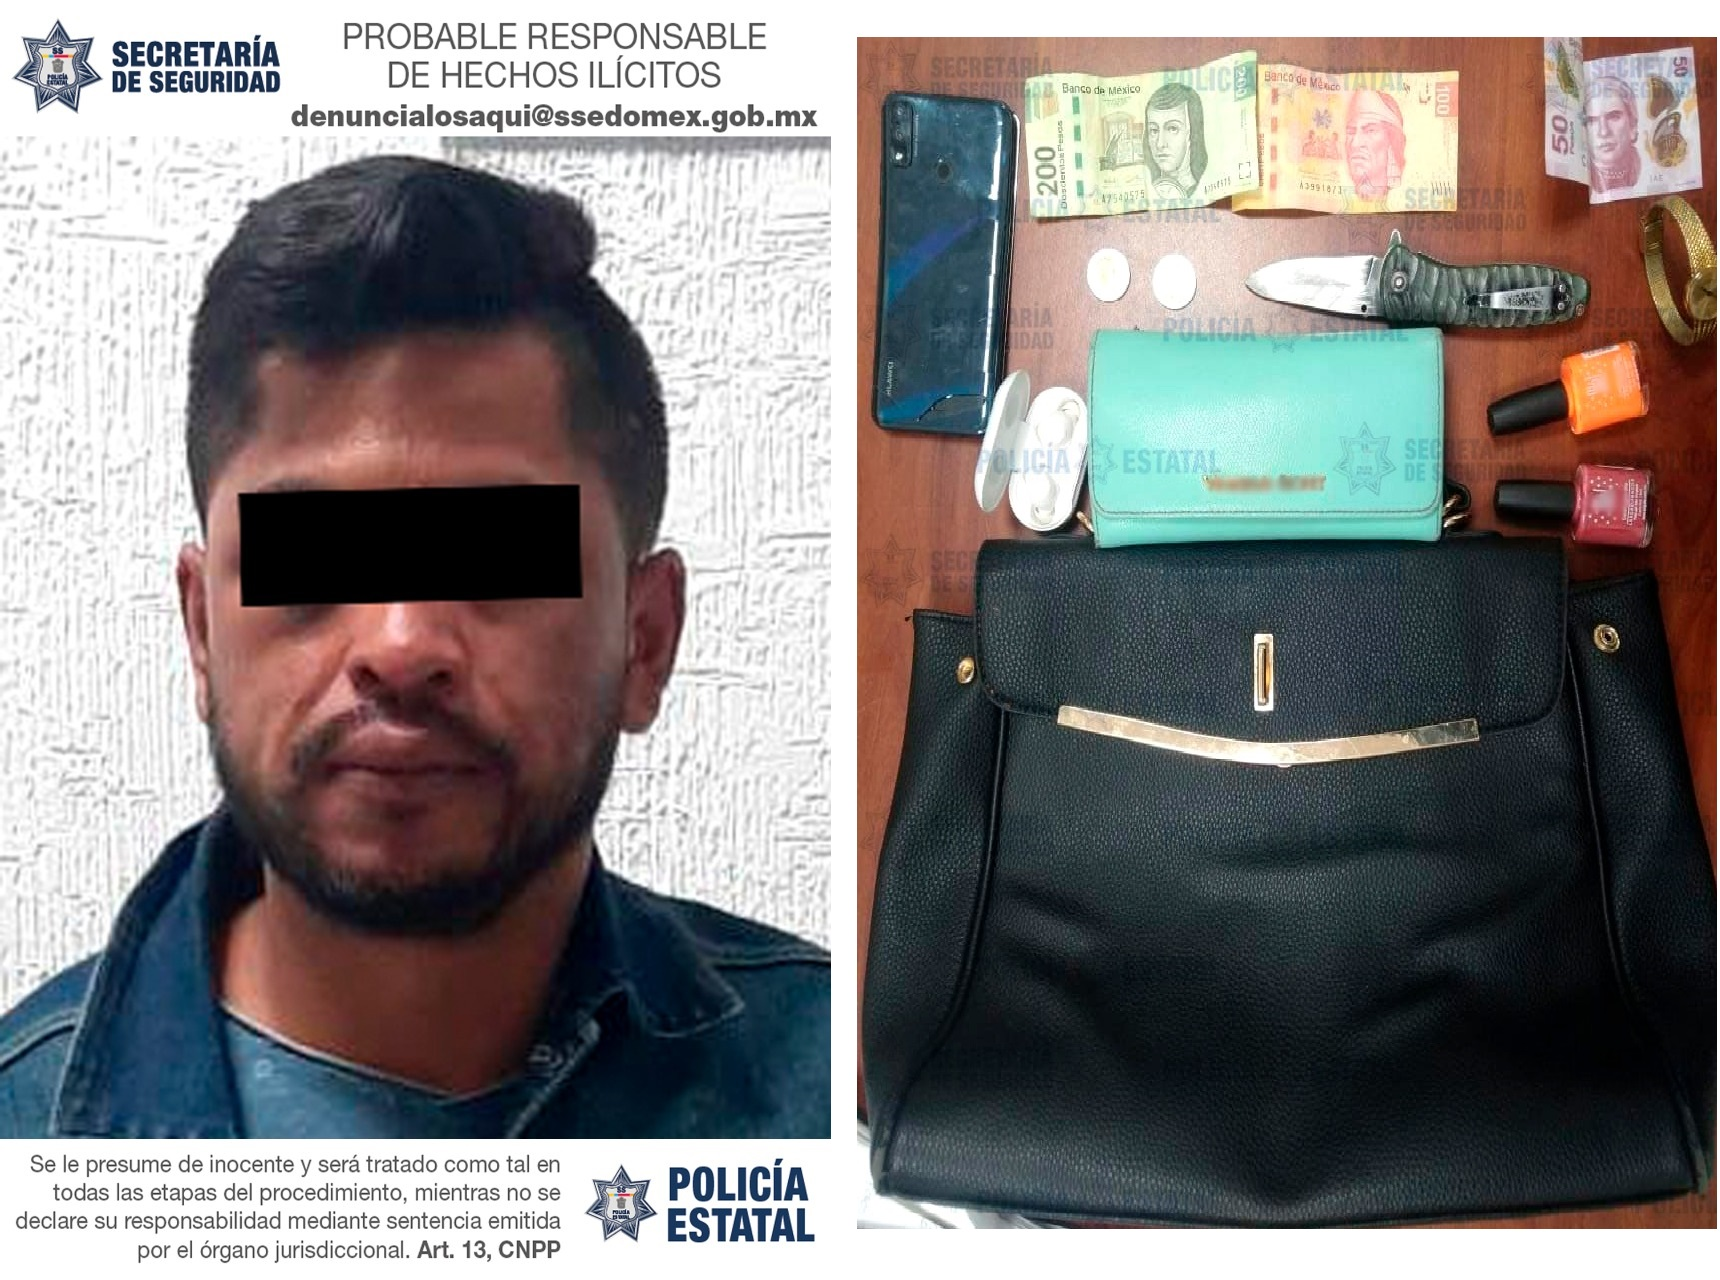 DETIENEN A IMPLICADO EN DELITOS DE ABUSO SEXUAL Y ROBO CON VIOLENCIA